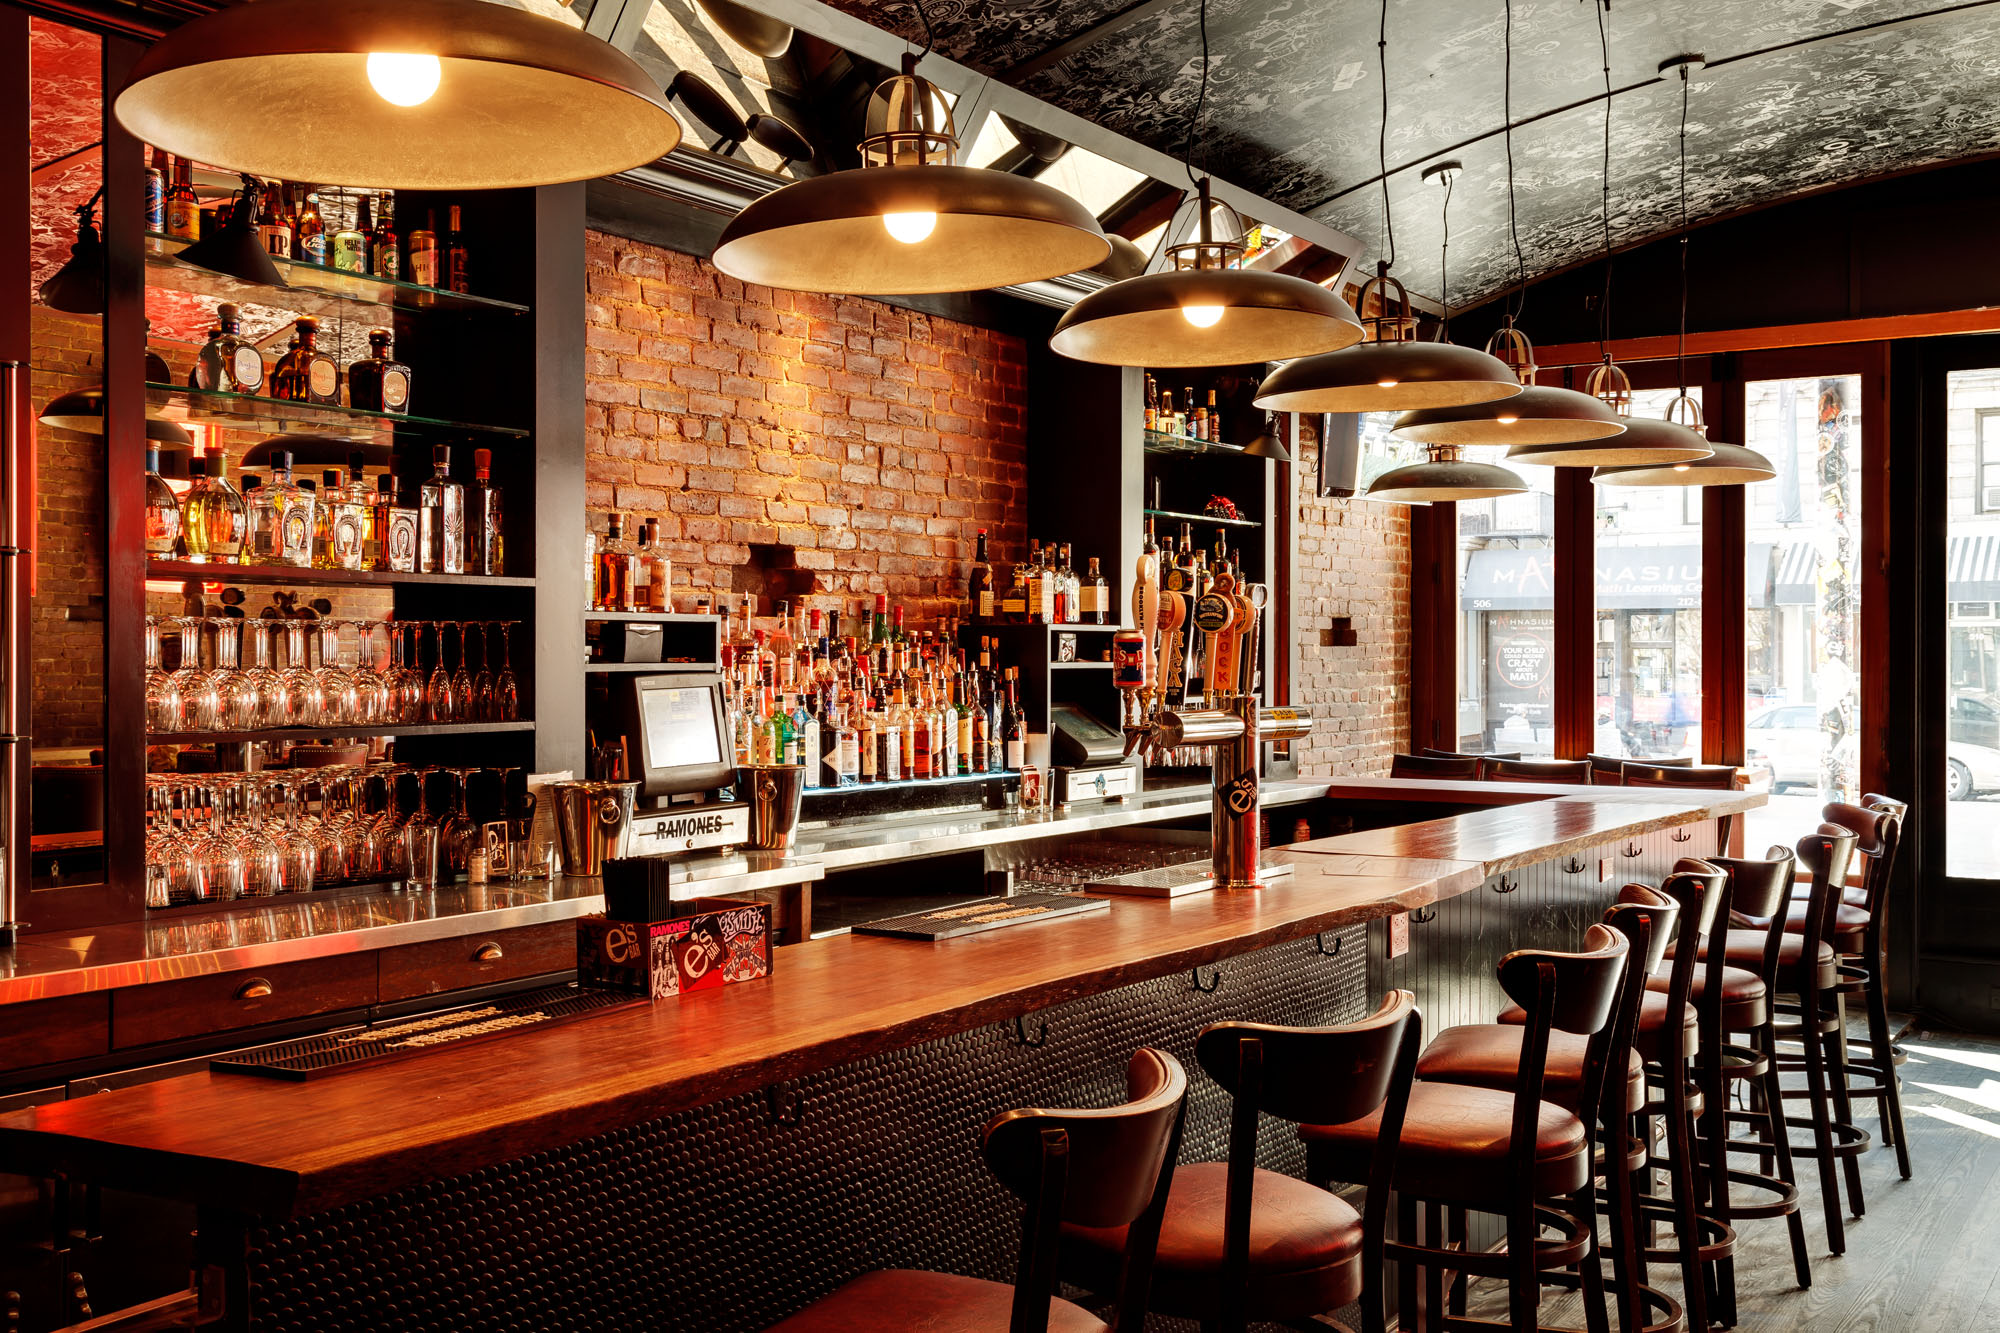 7 Marketing Tips For Bars That Can Increase Exposure & Sales